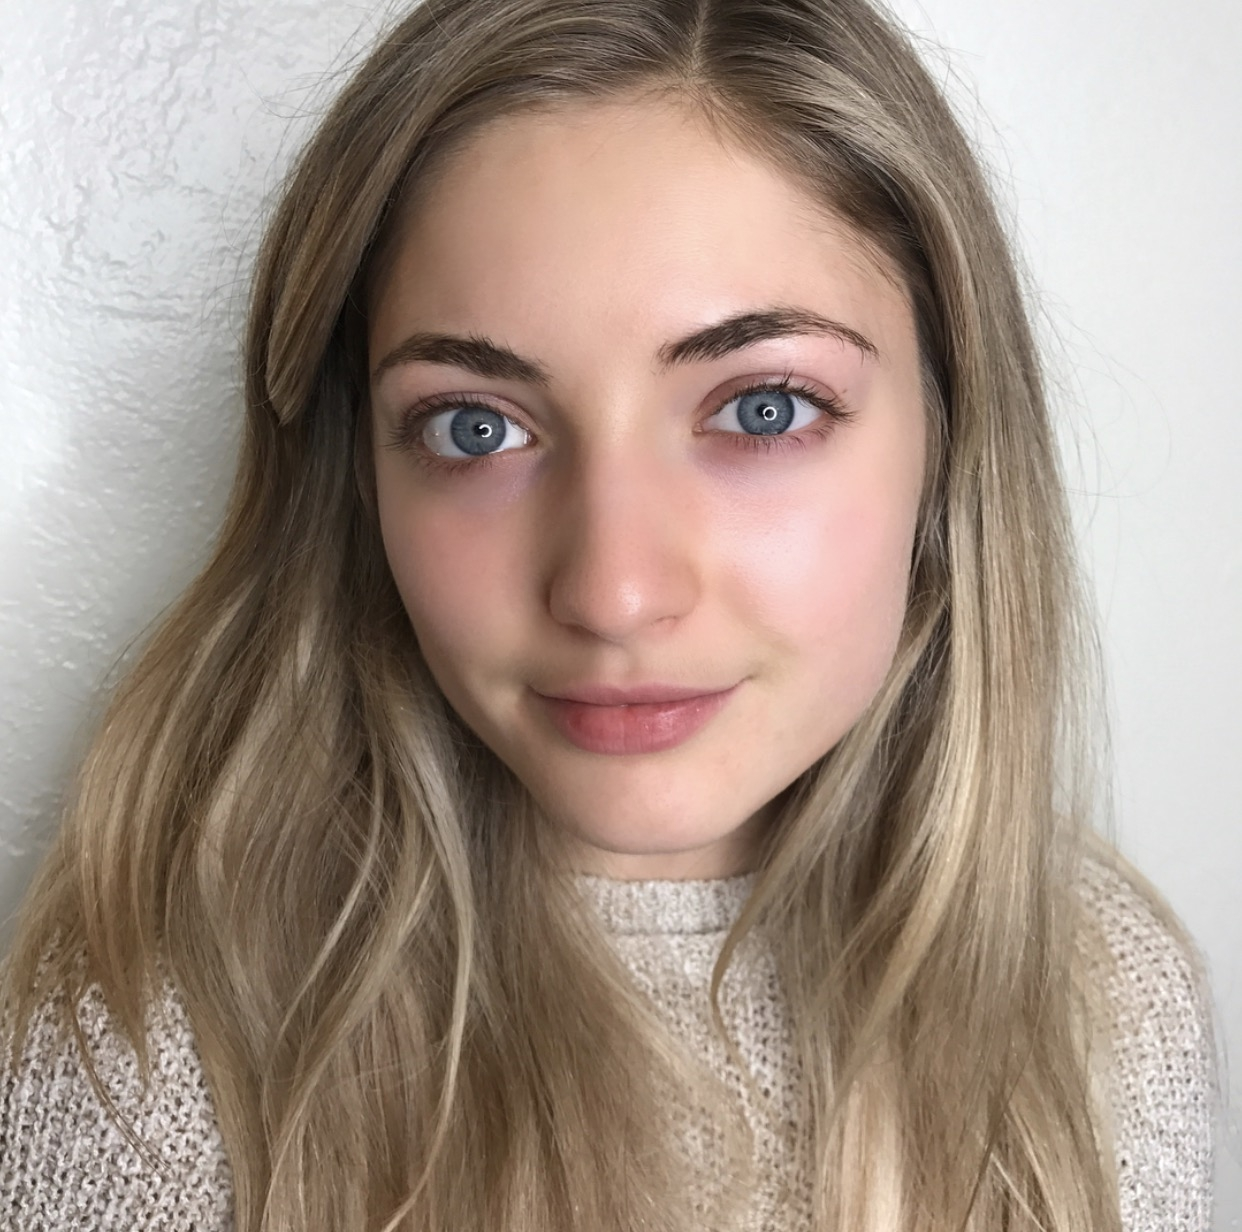 All About My Eyebrow Microblading Experience - The Blonde in